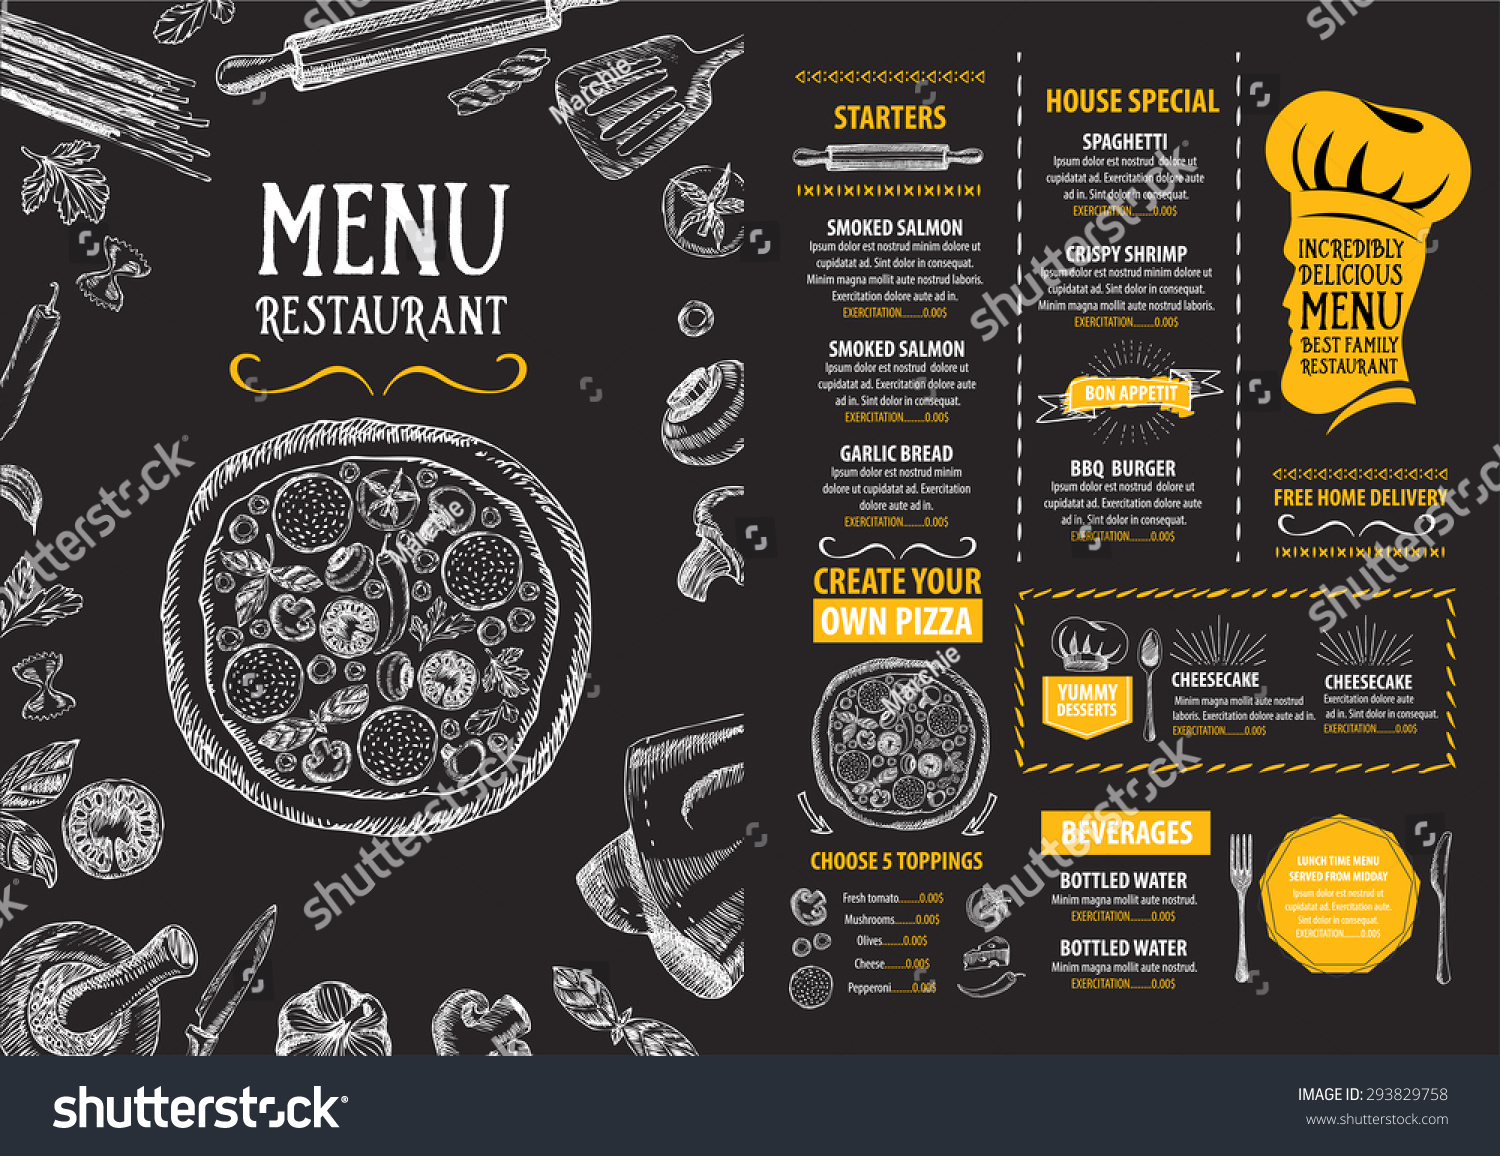 Current College Student Resume Examplesricerche correlate a – Lunch Menu Template